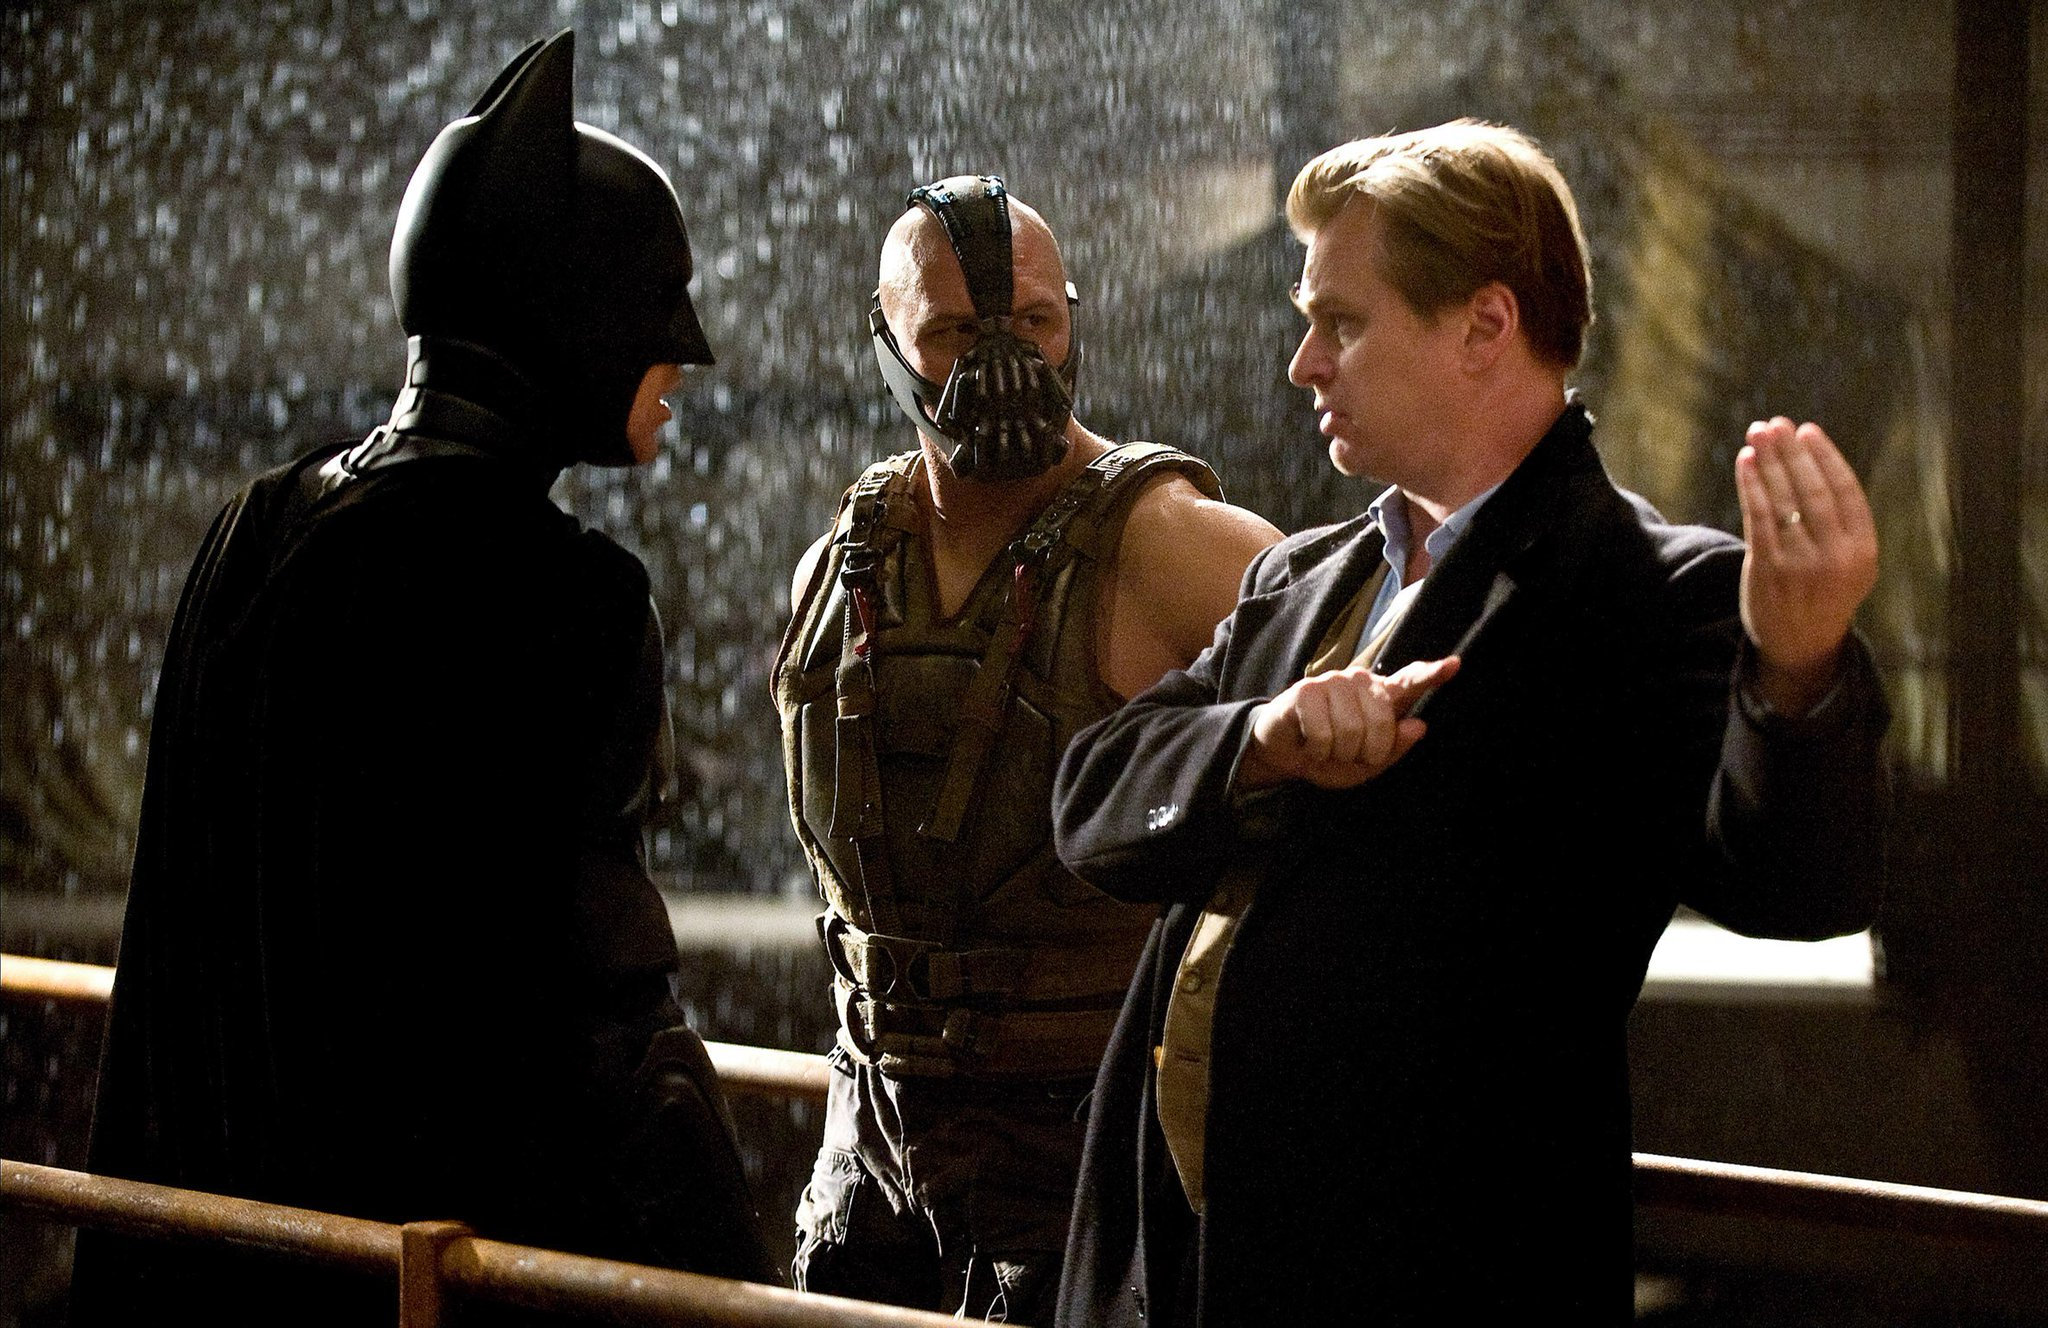 the ideas of utilitarianism in the dark knight a movie by christopher nolan Christopher nolan on the first x-men movie that's my idea by nick dourian on monday, september 9th, 2013 can you remember when bryan singer was a revered member of the superhero director community.